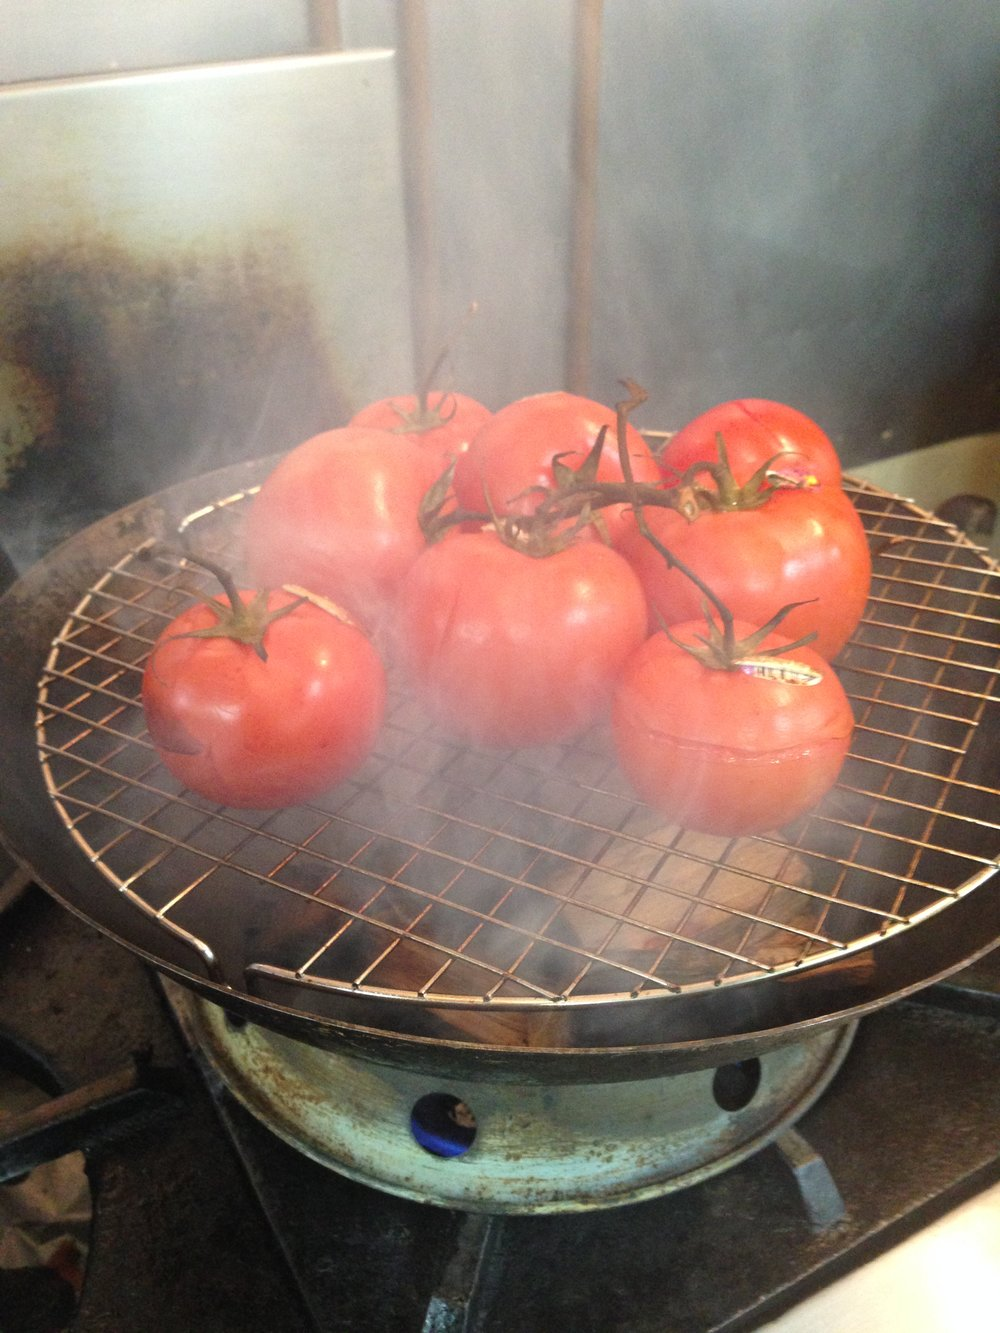 Hickory-smoking Tomatoes for Aioli (for our shrmip burgers)